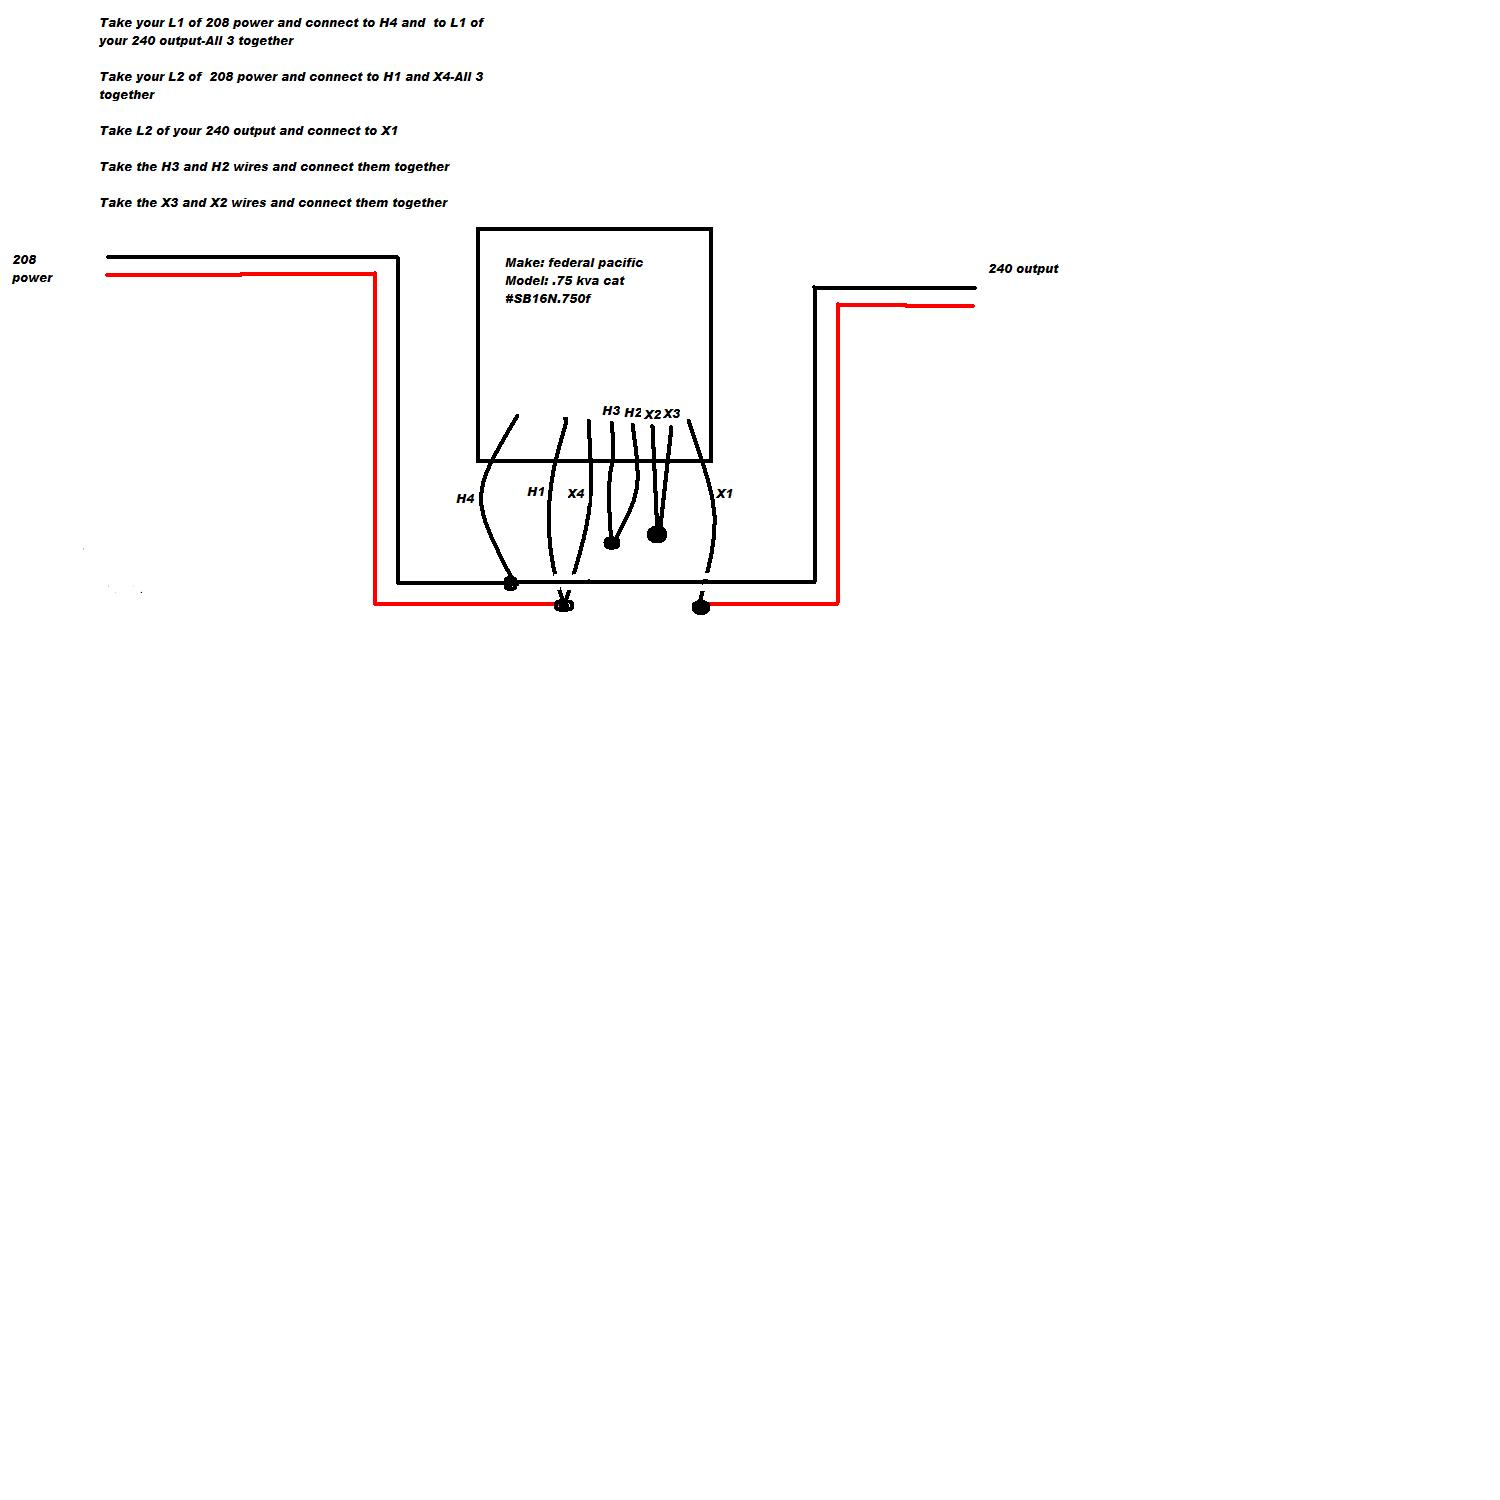 Federal Pacific Buck Boost Transformer Wiring Diagram Sample